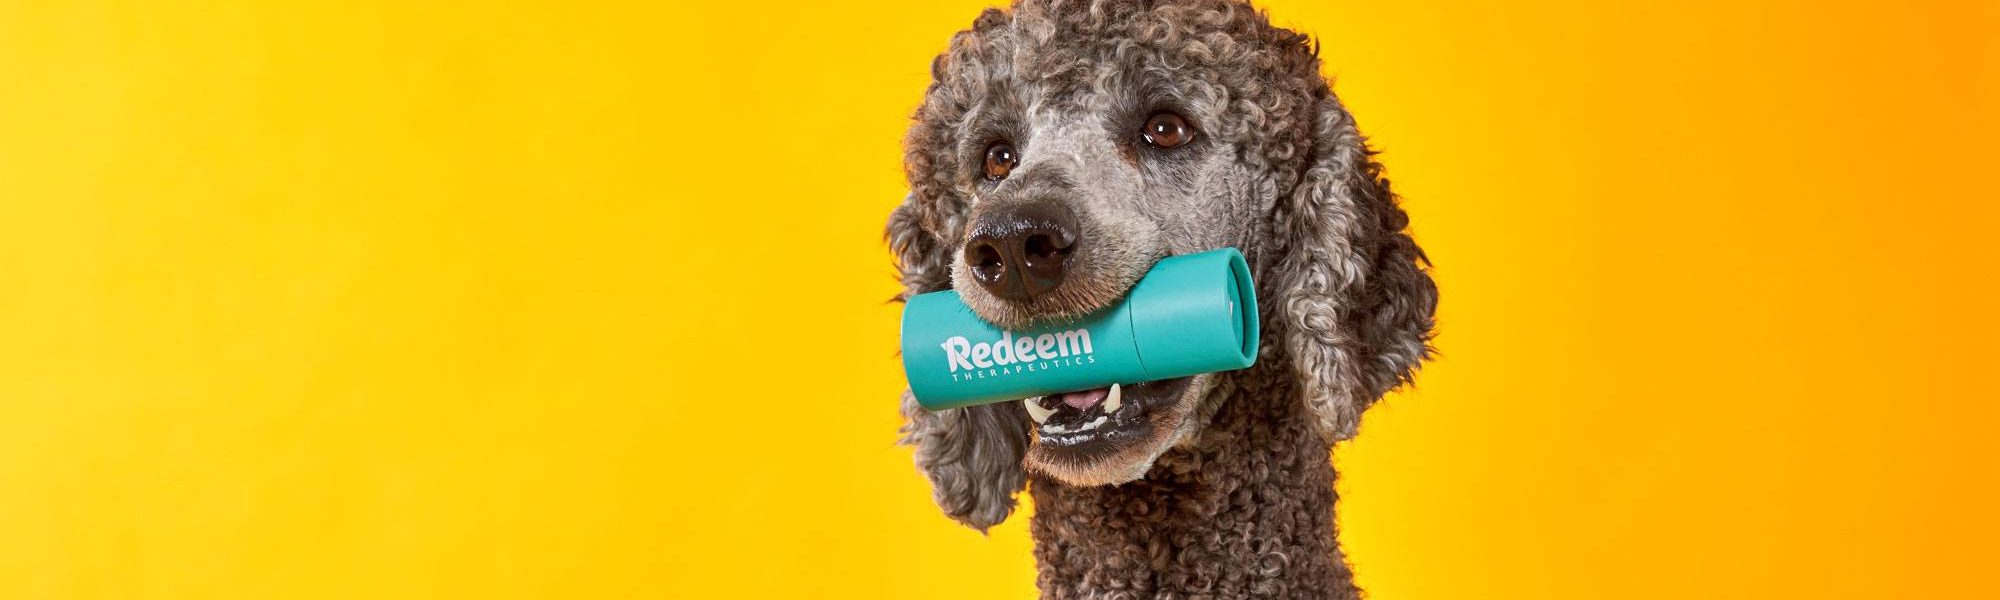 Large poodle dog holding a container of Redeem Therapeutics in his mouth